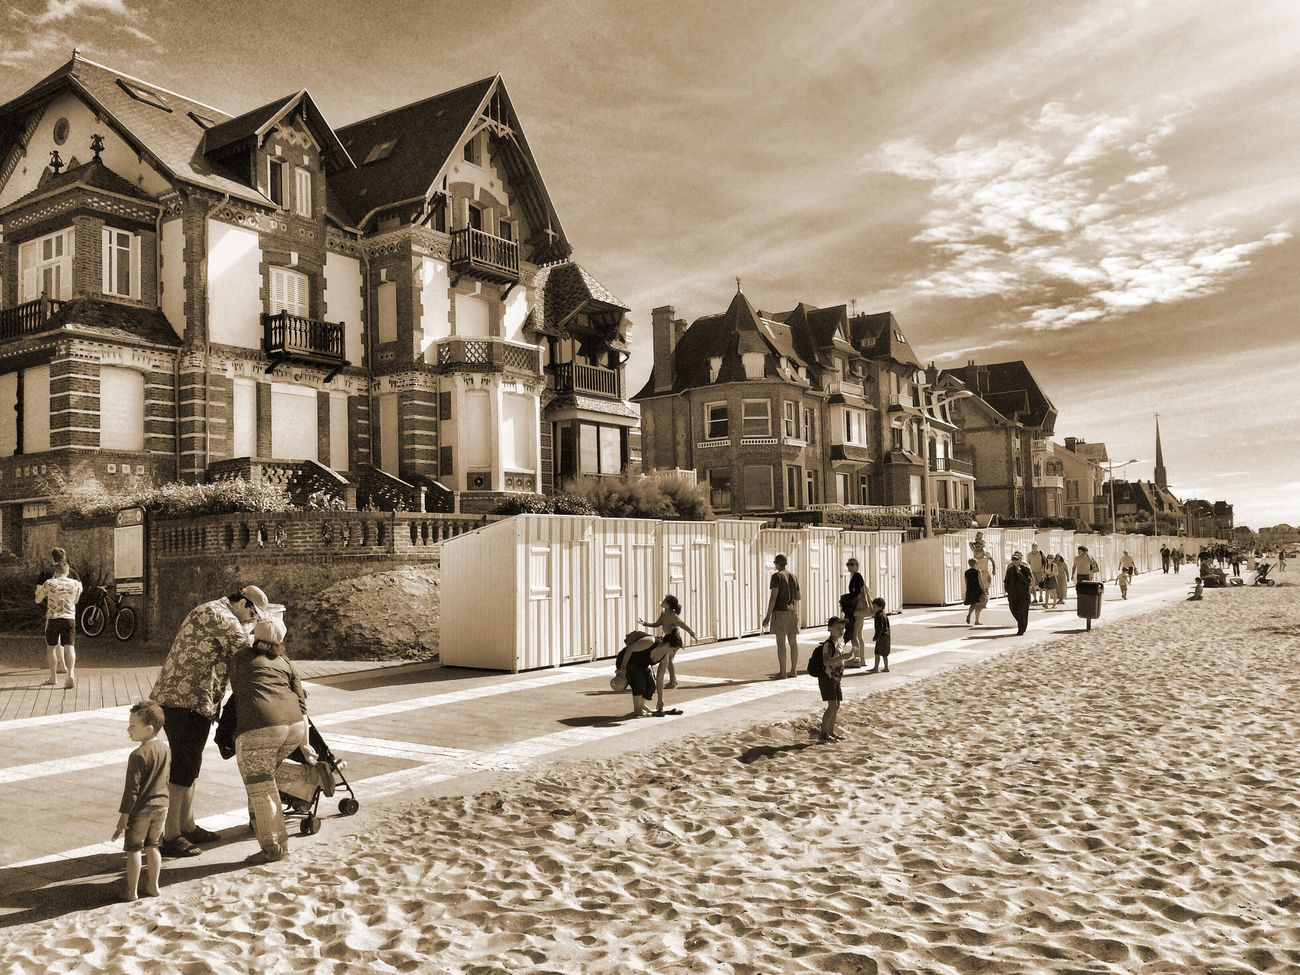 Beach Normandie Normandy IPhoneography Streetphotography Summertime Sepia Vintage On The Way On The Beach Holiday Architecture Old House France à Houlgate (14)